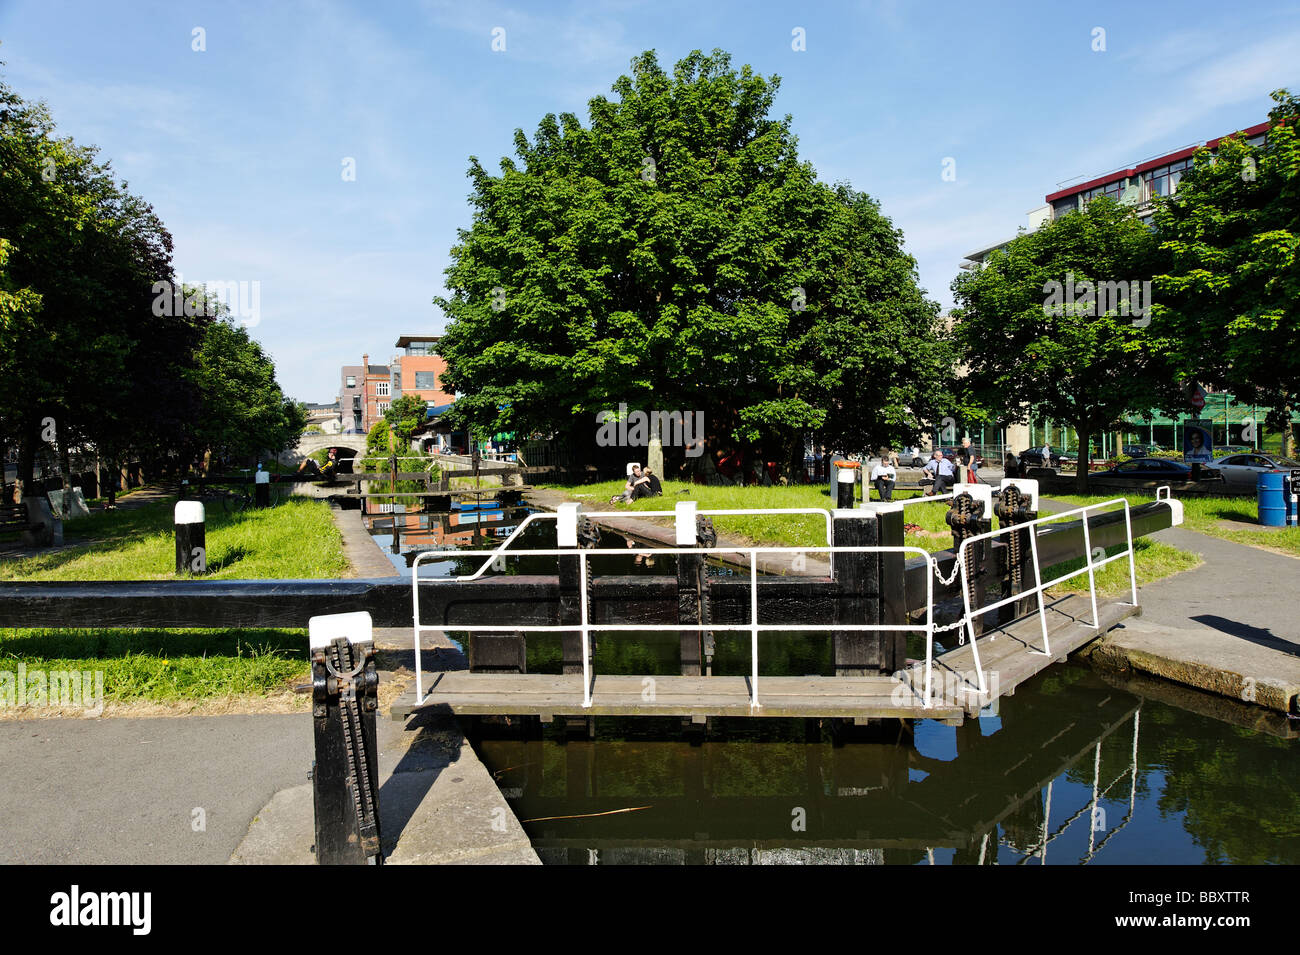 Lock gate of the Grand Canal in Dublin Republic of Ireland - Stock Image